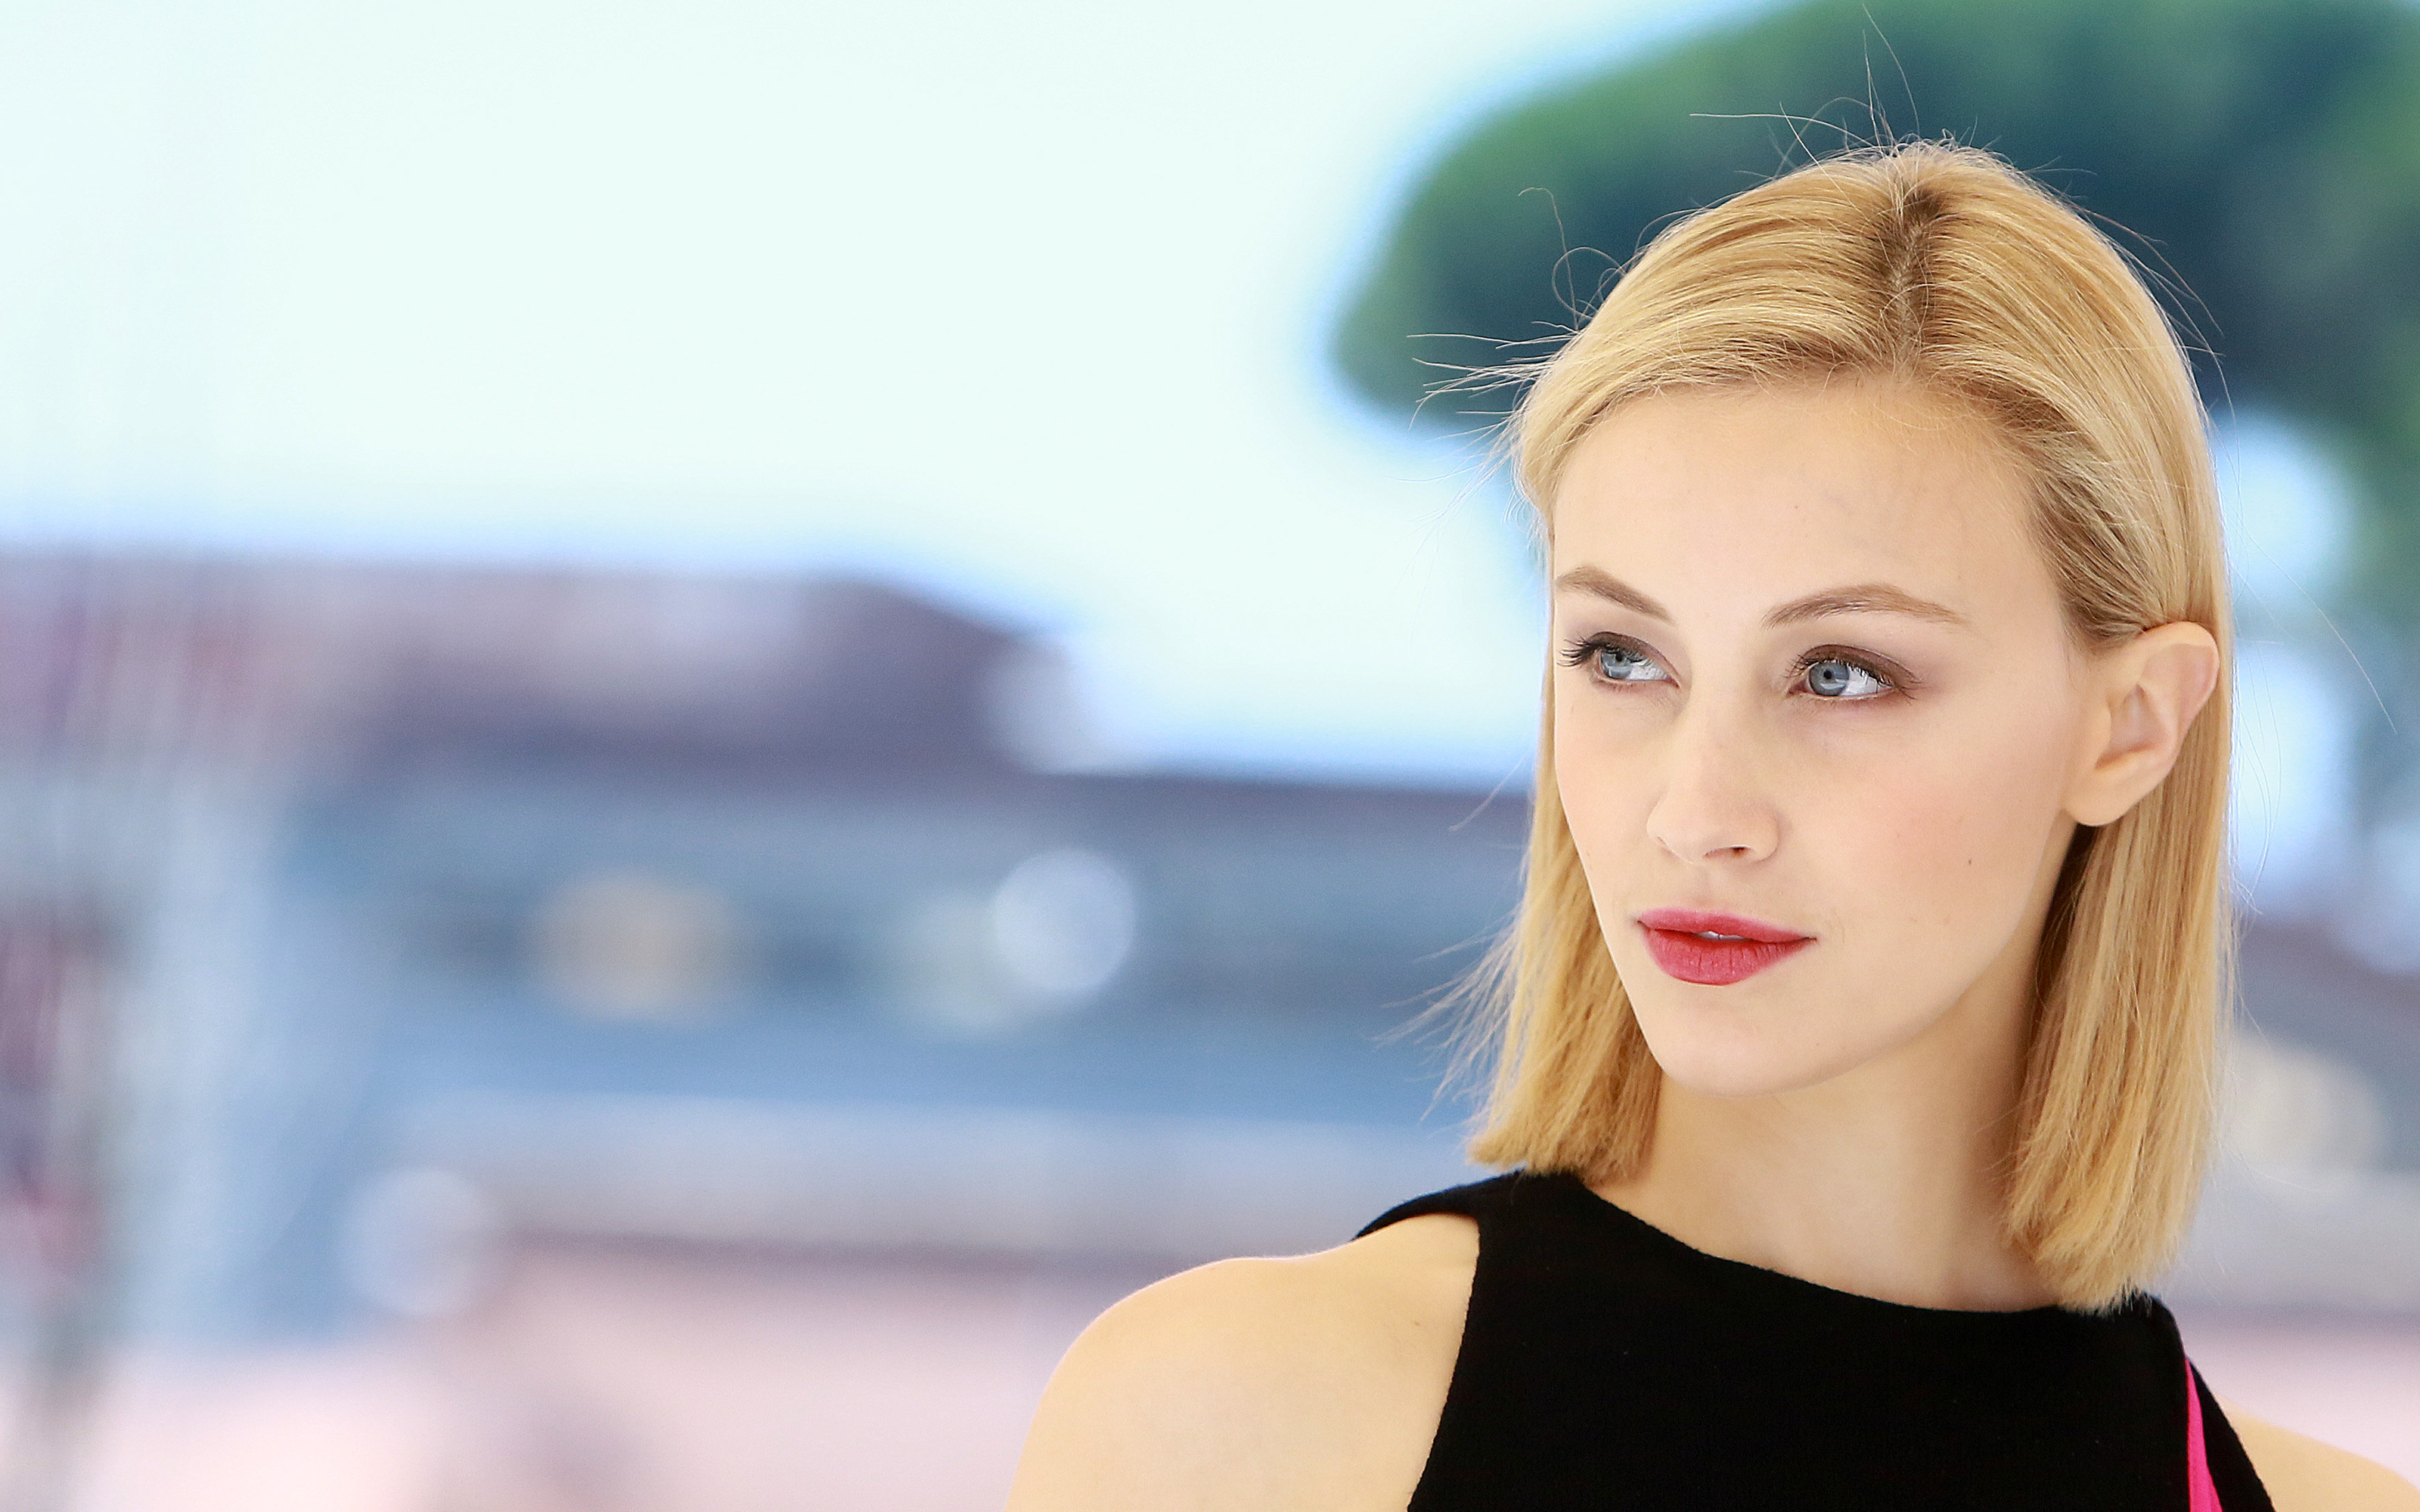 sarah gadon widescreen hd wallpaper 54226